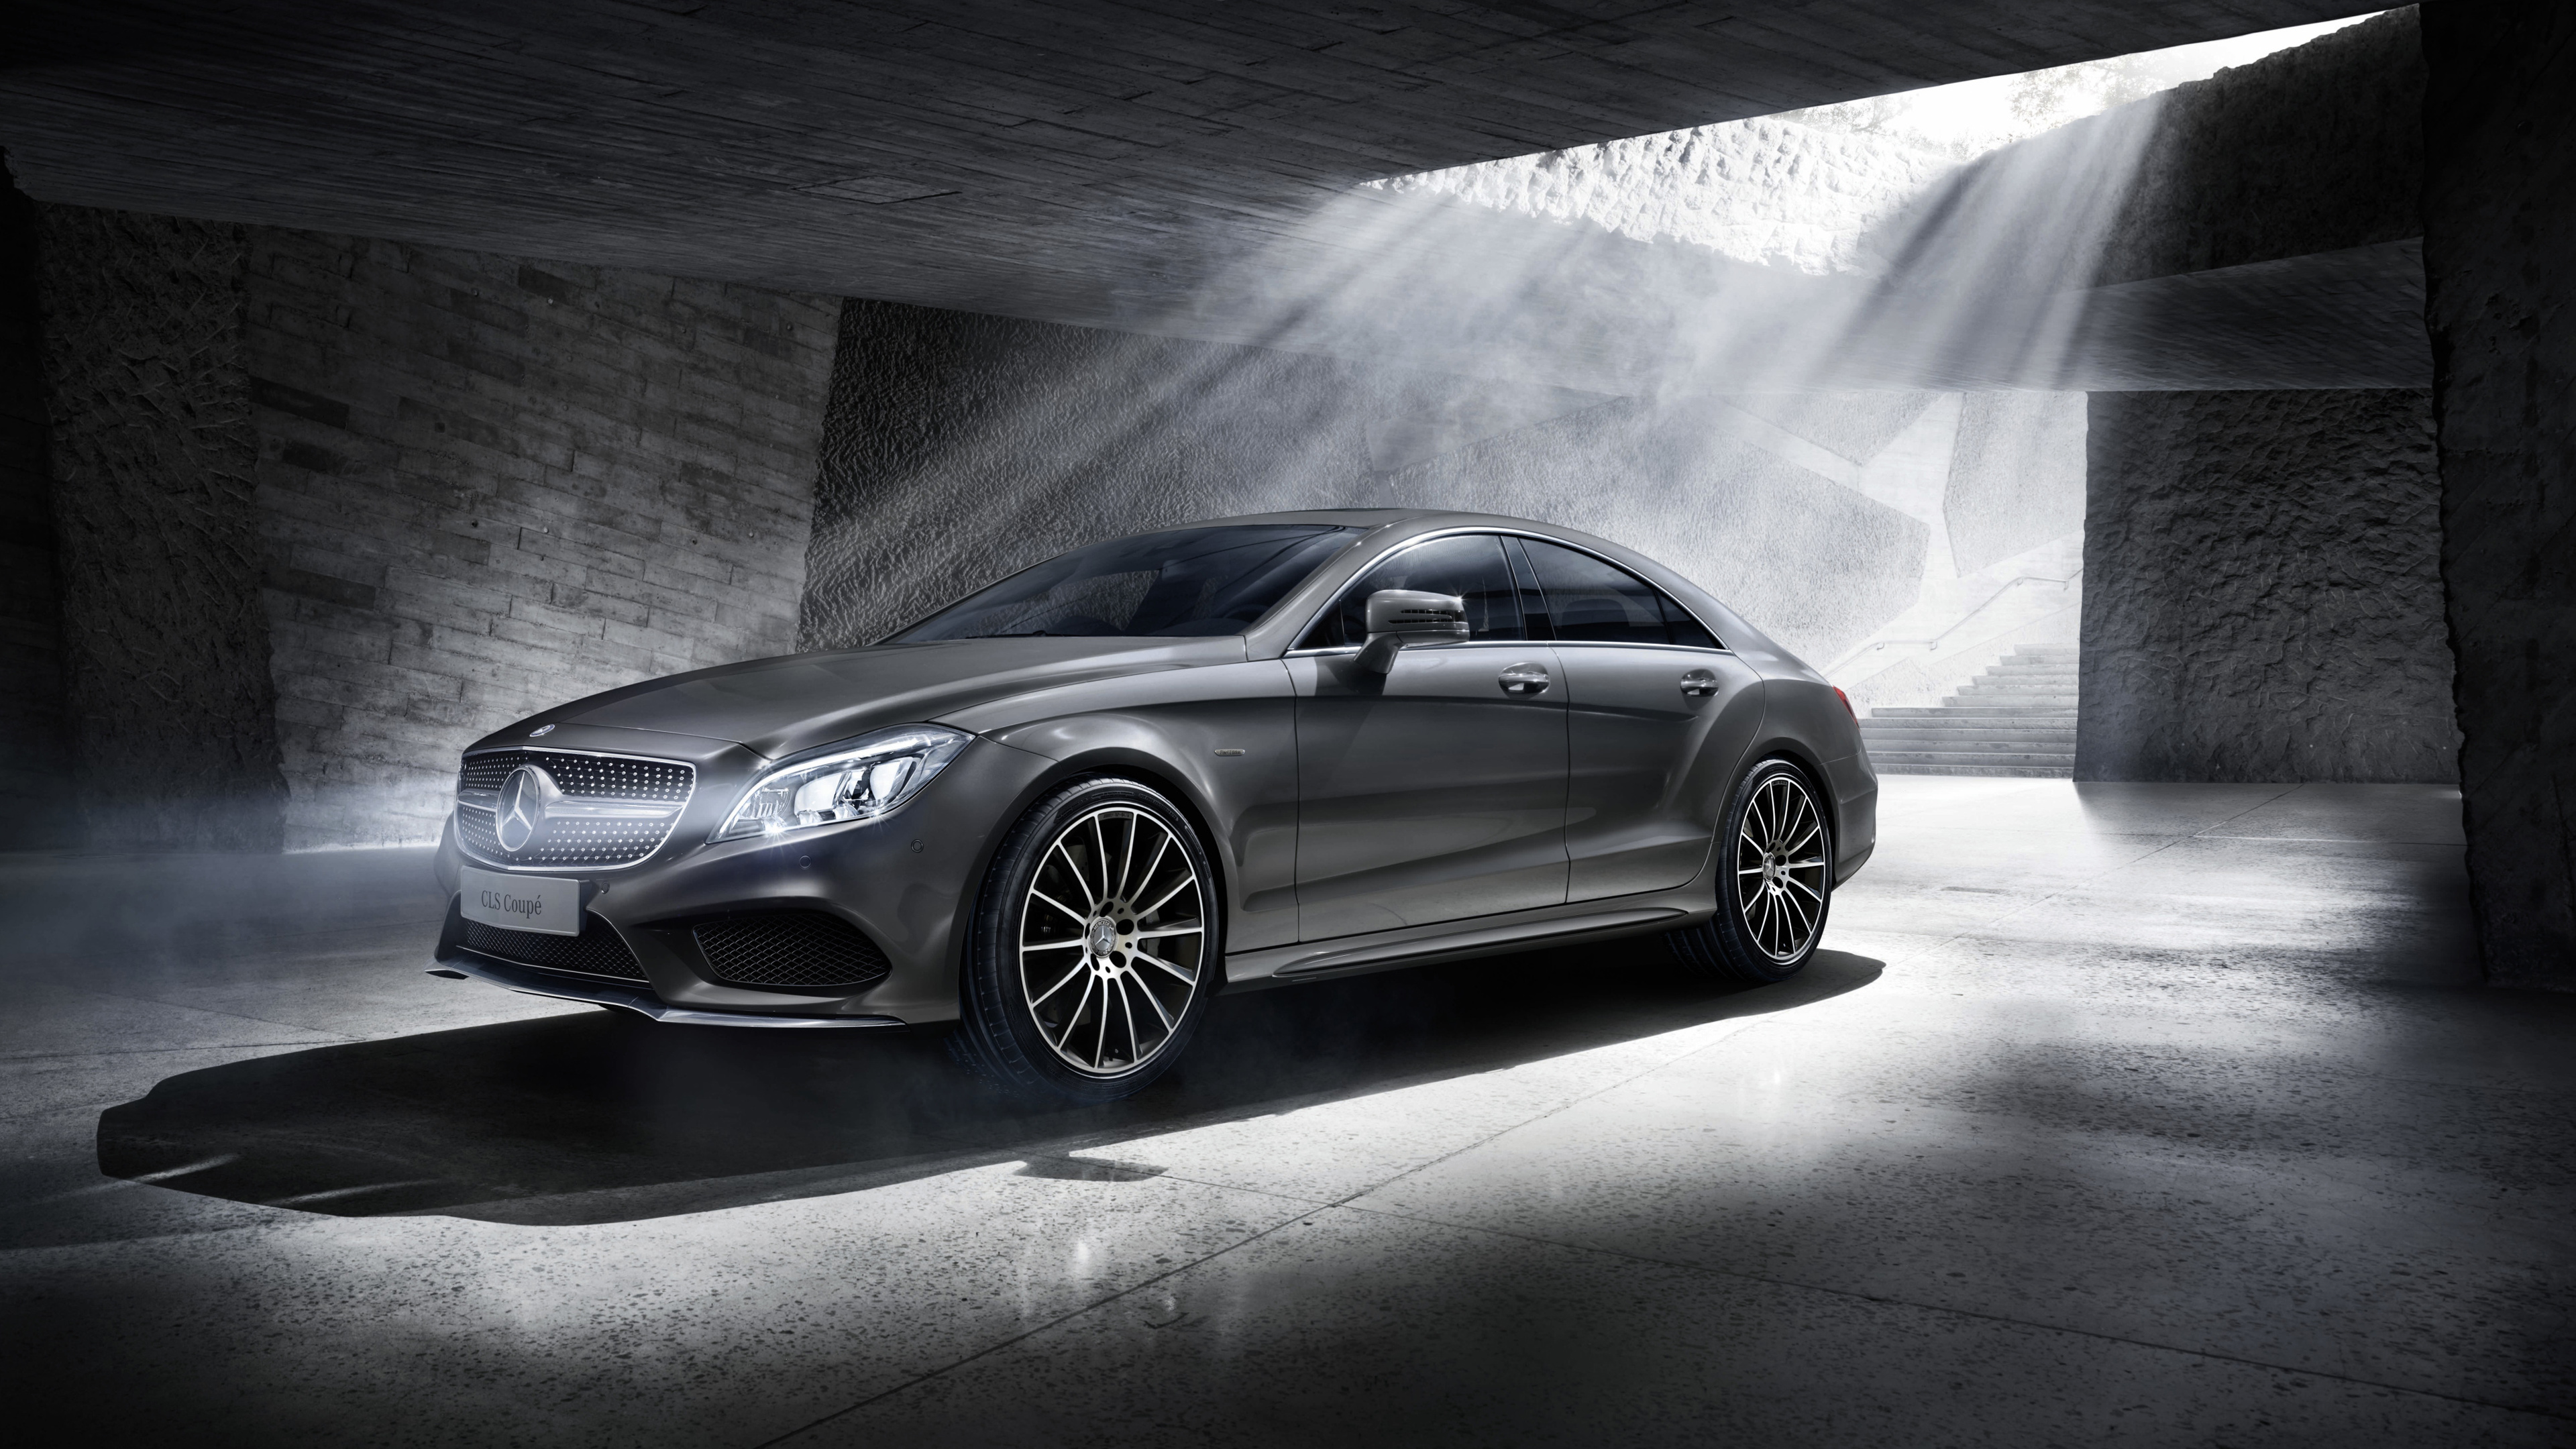 2016 mercedes benz cls coupe final edition wallpaper hd